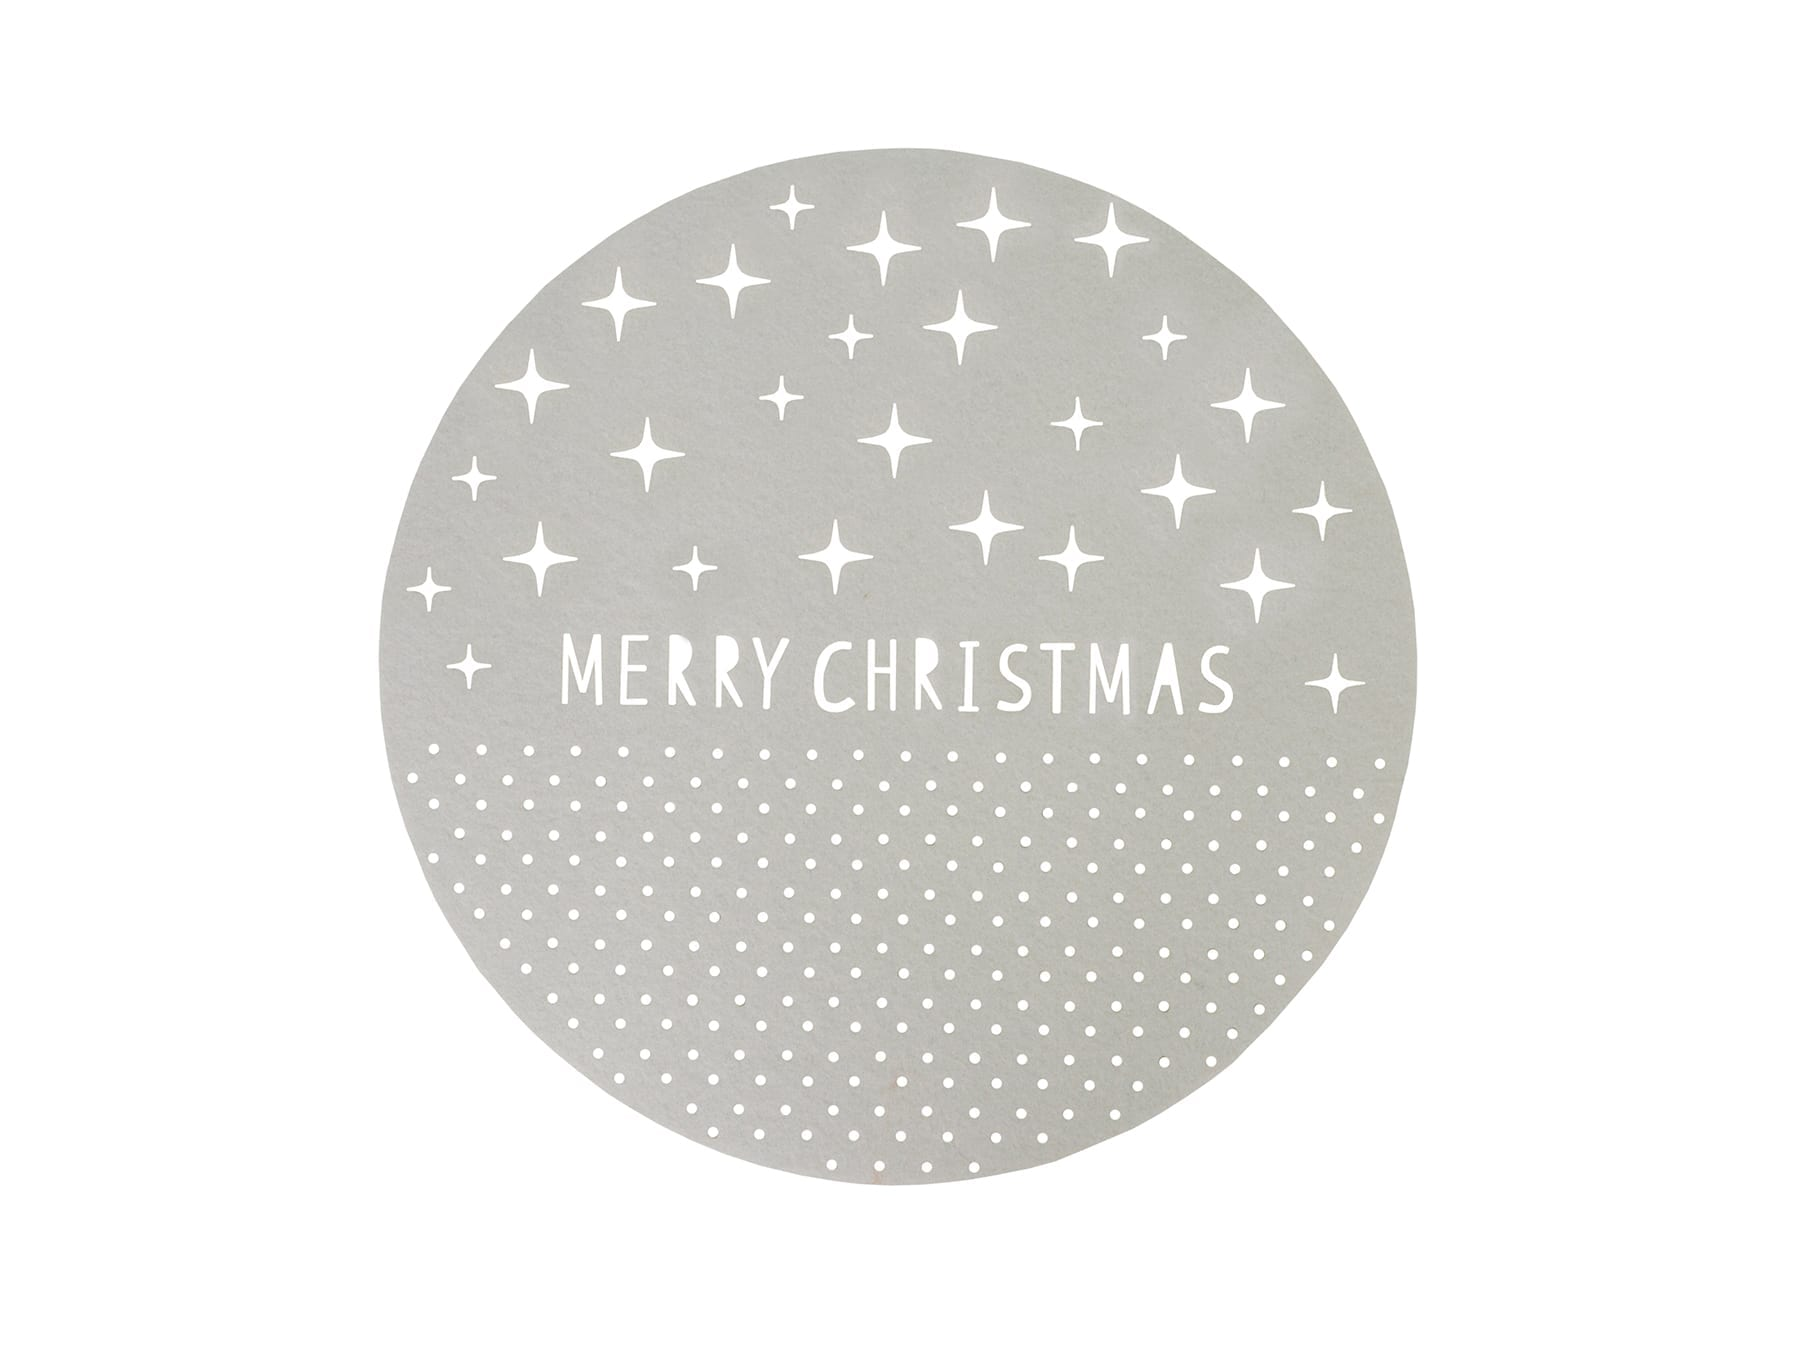 Linens & More Christmas Merry Christmas Felt Placemat available at McKenzie & Willis